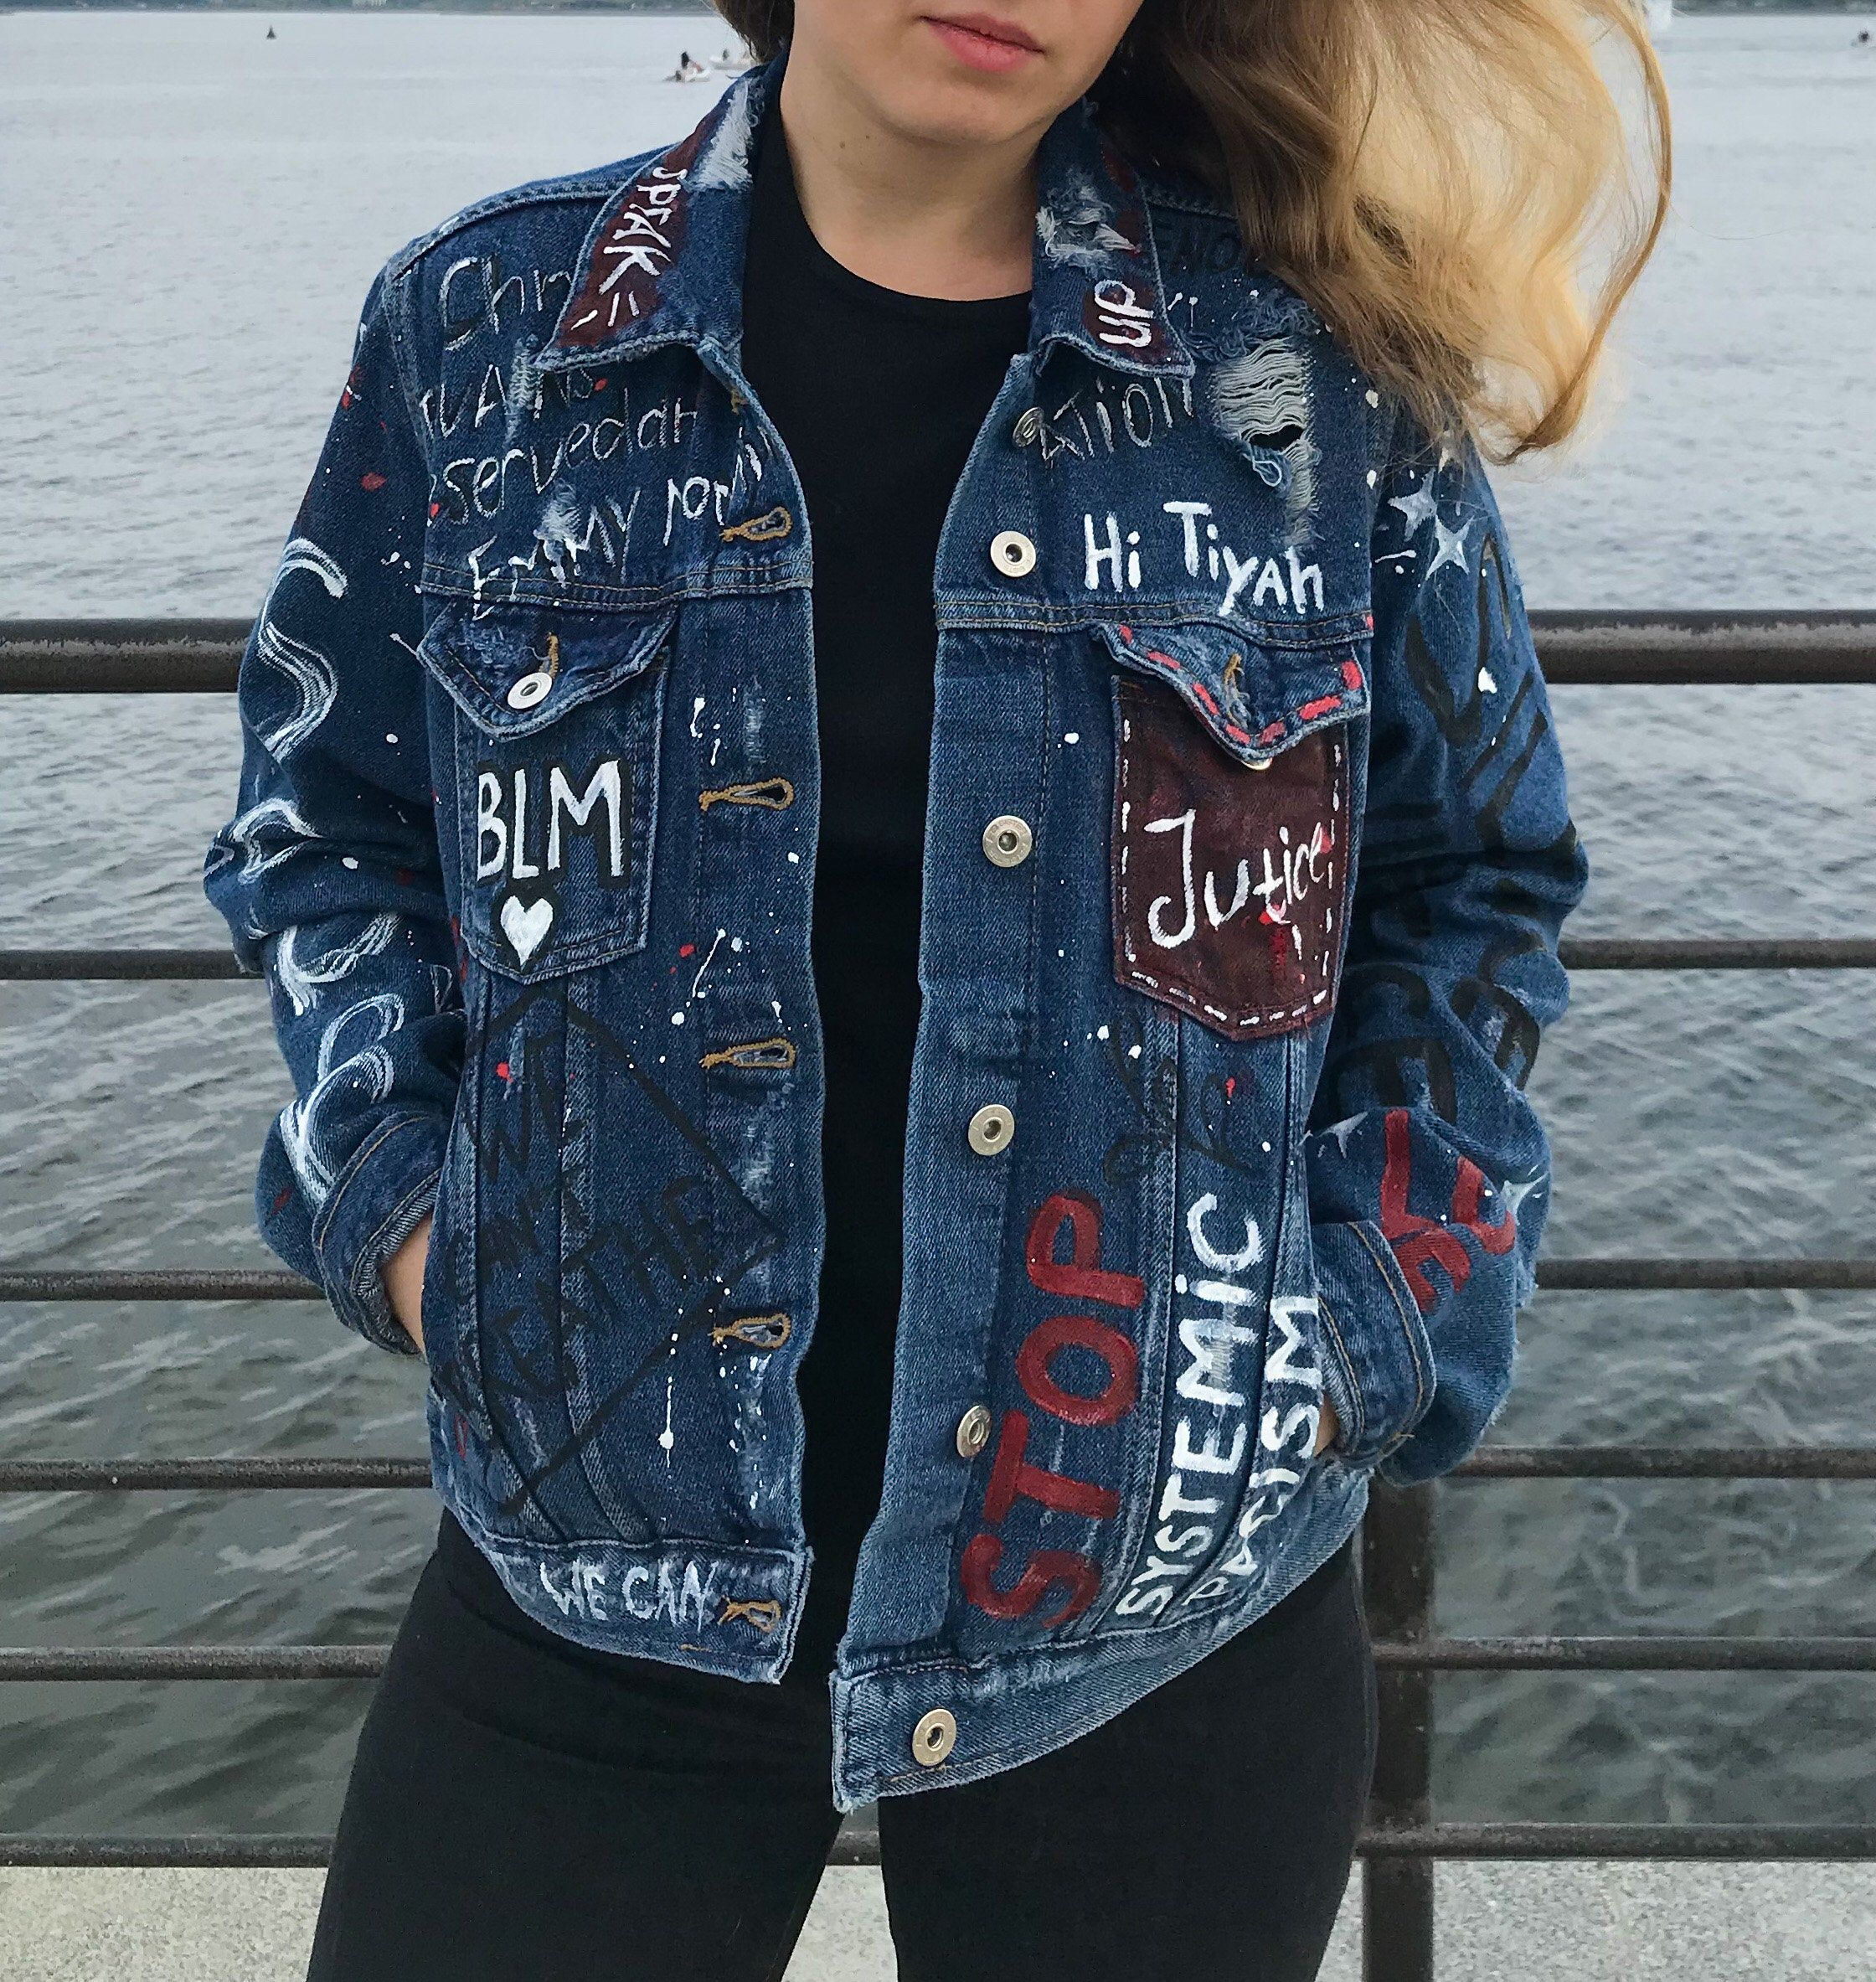 Excited To Share This Item From My Etsy Shop Black Lives Matter Hand Paint Denim Jacket Custom Jean Jacket In 2021 Denim Jacket Hand Painted Denim Jacket Jackets [ 2366 x 2240 Pixel ]